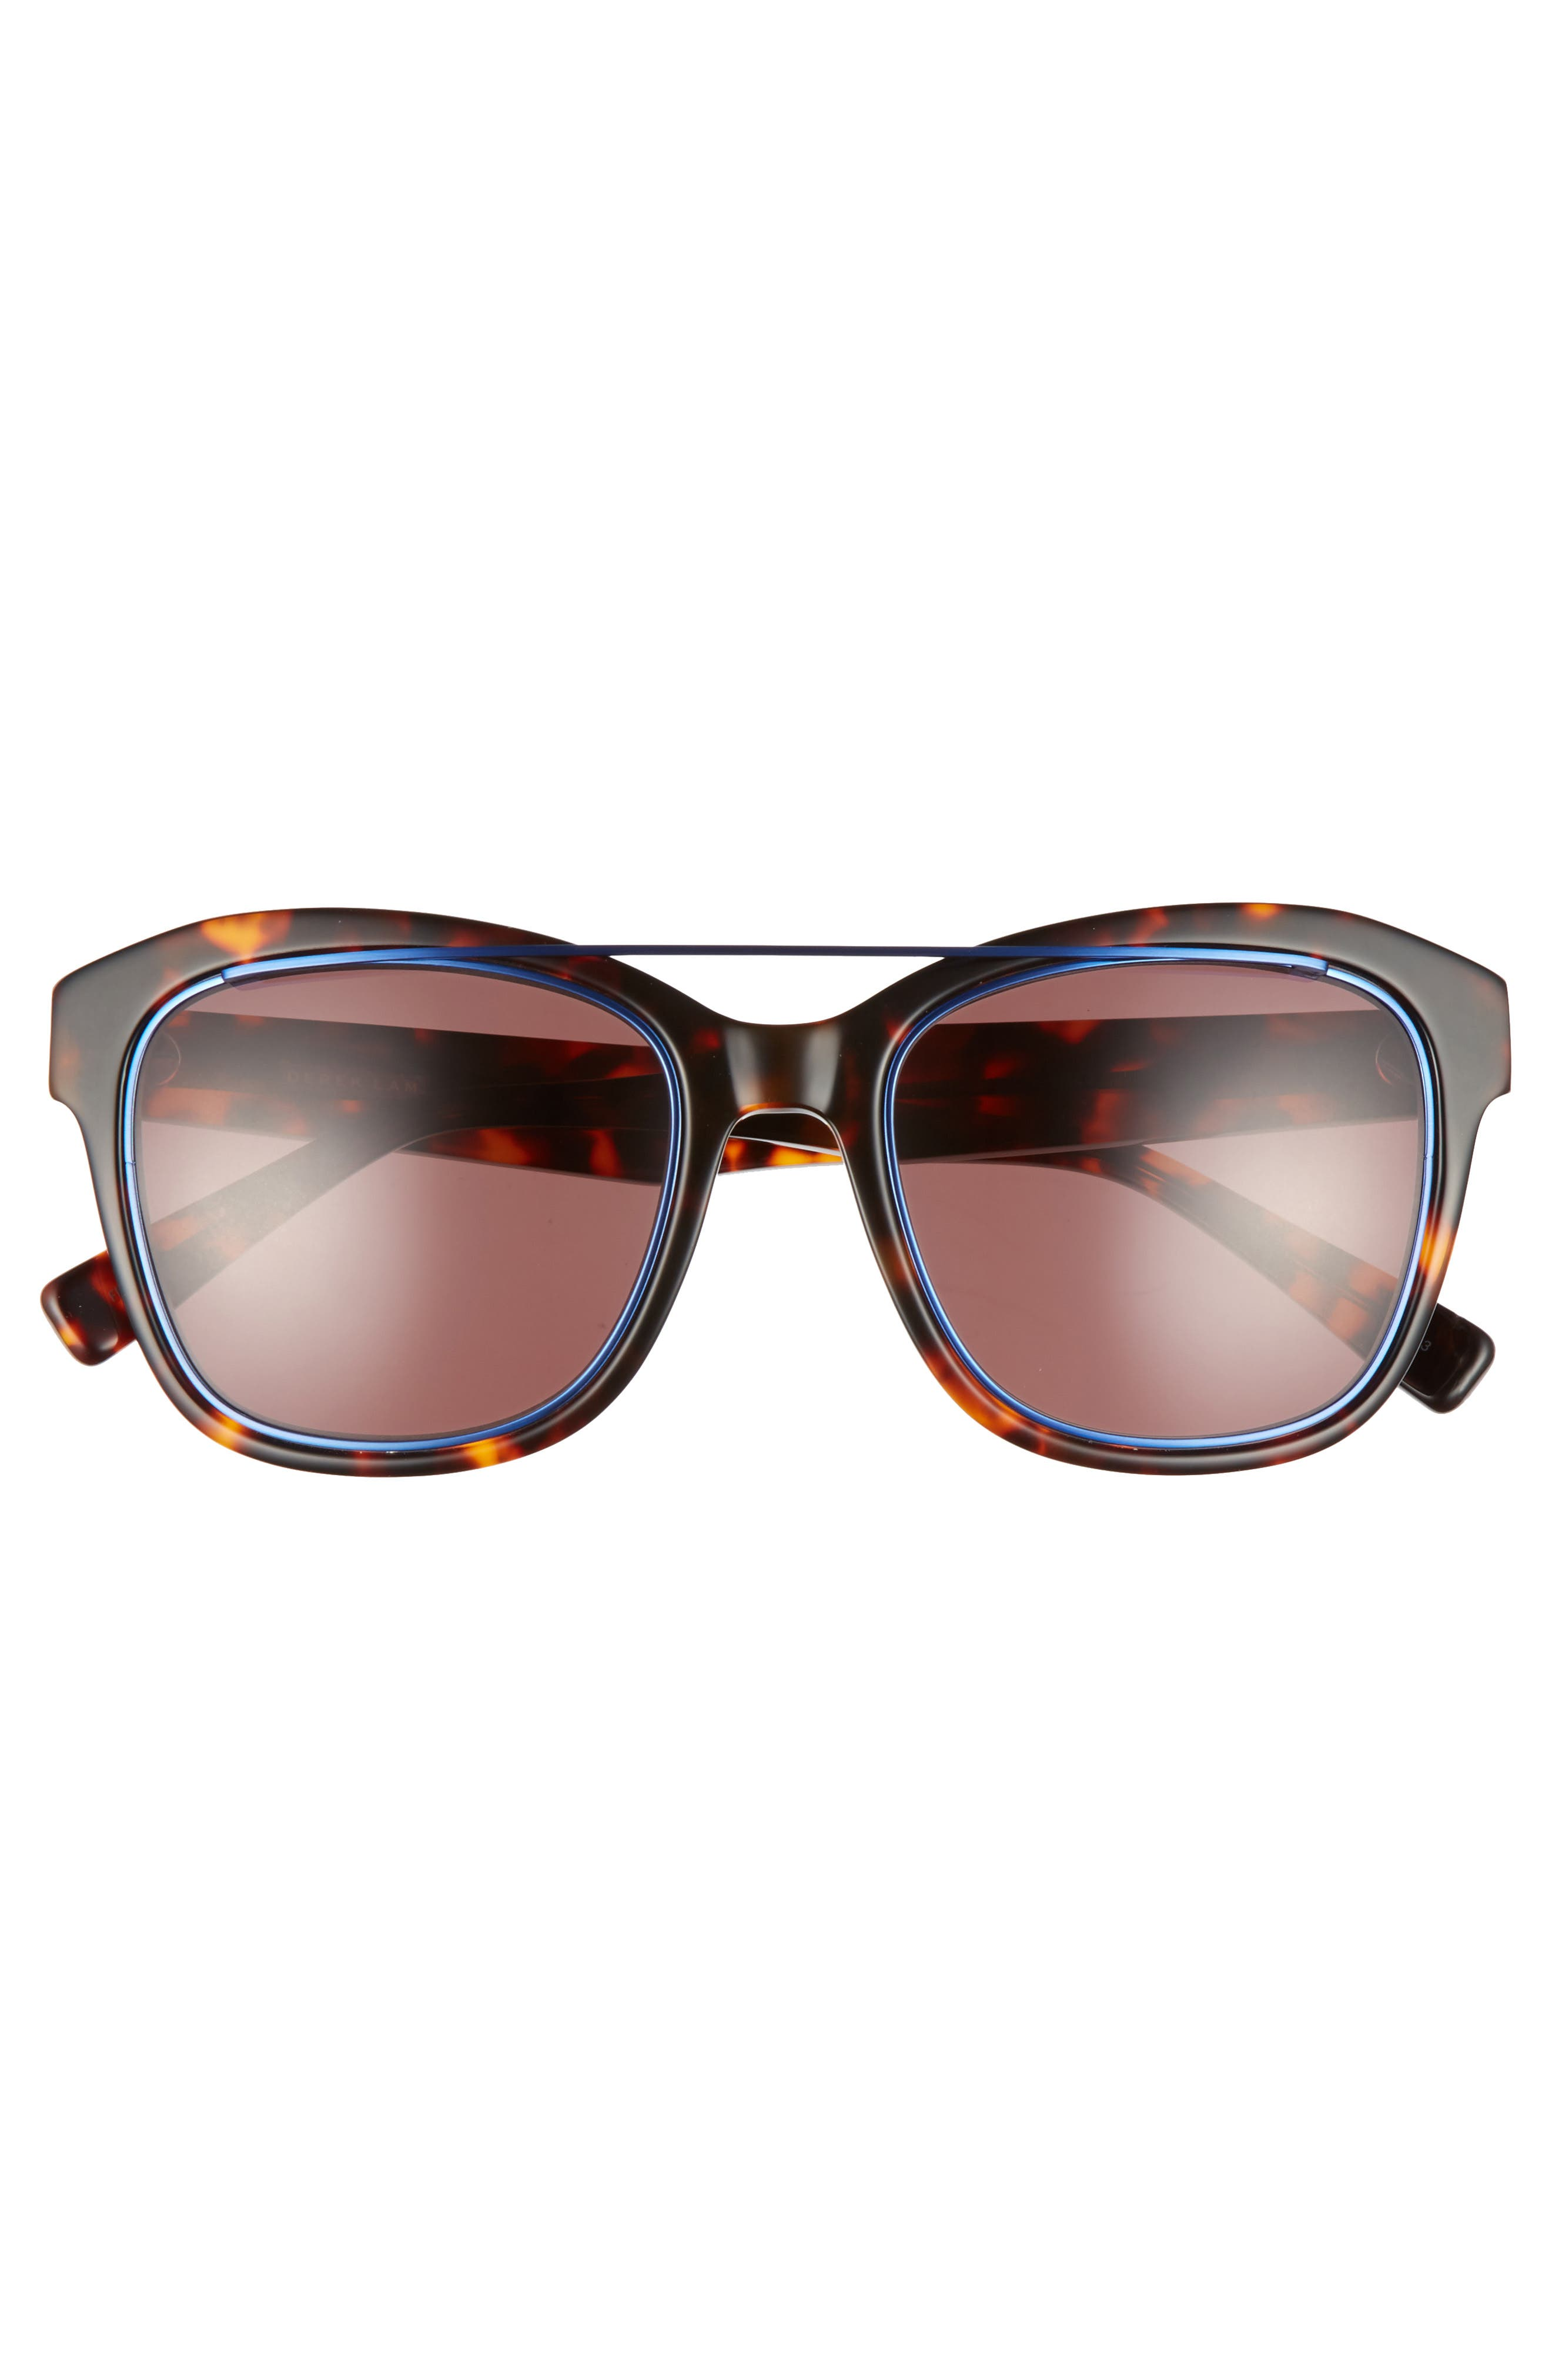 Hudson 52mm Gradient Sunglasses,                             Alternate thumbnail 3, color,                             HAVANA TORTOISE